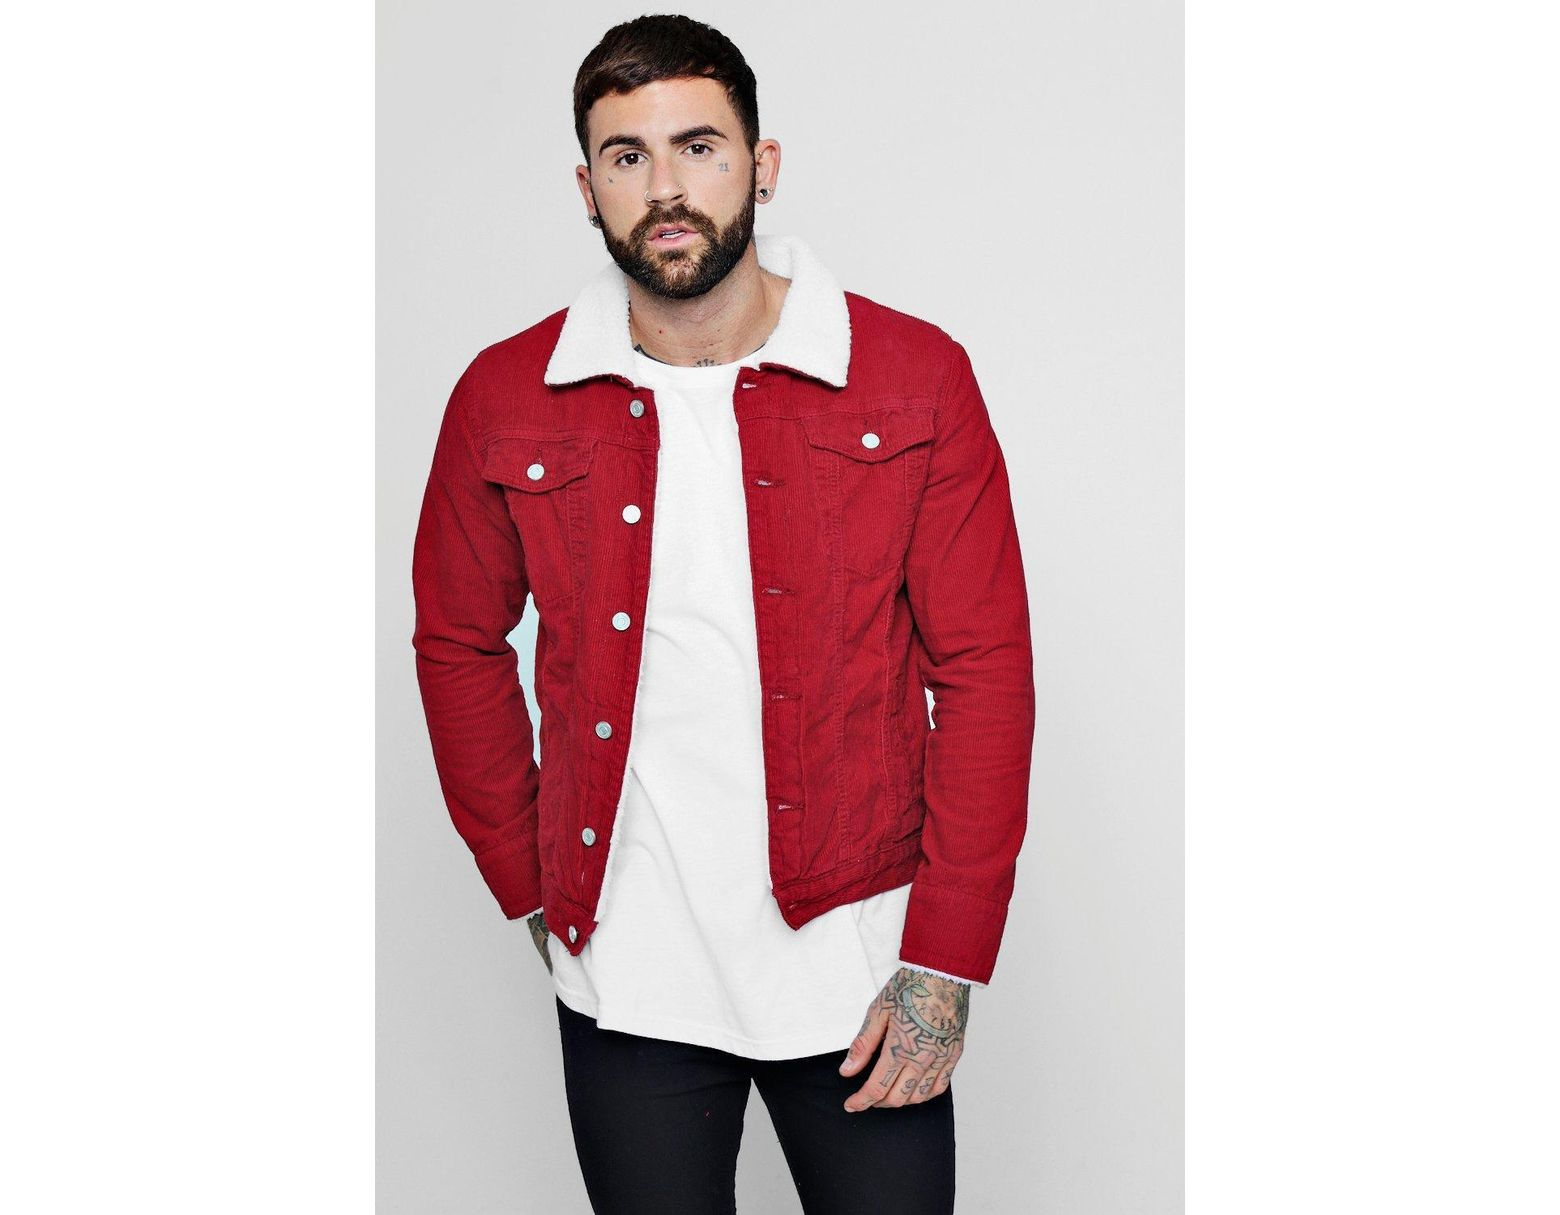 eb54dfc74ea27 BoohooMAN Cord Jacket With Borg Collar in Red for Men - Save 31% - Lyst